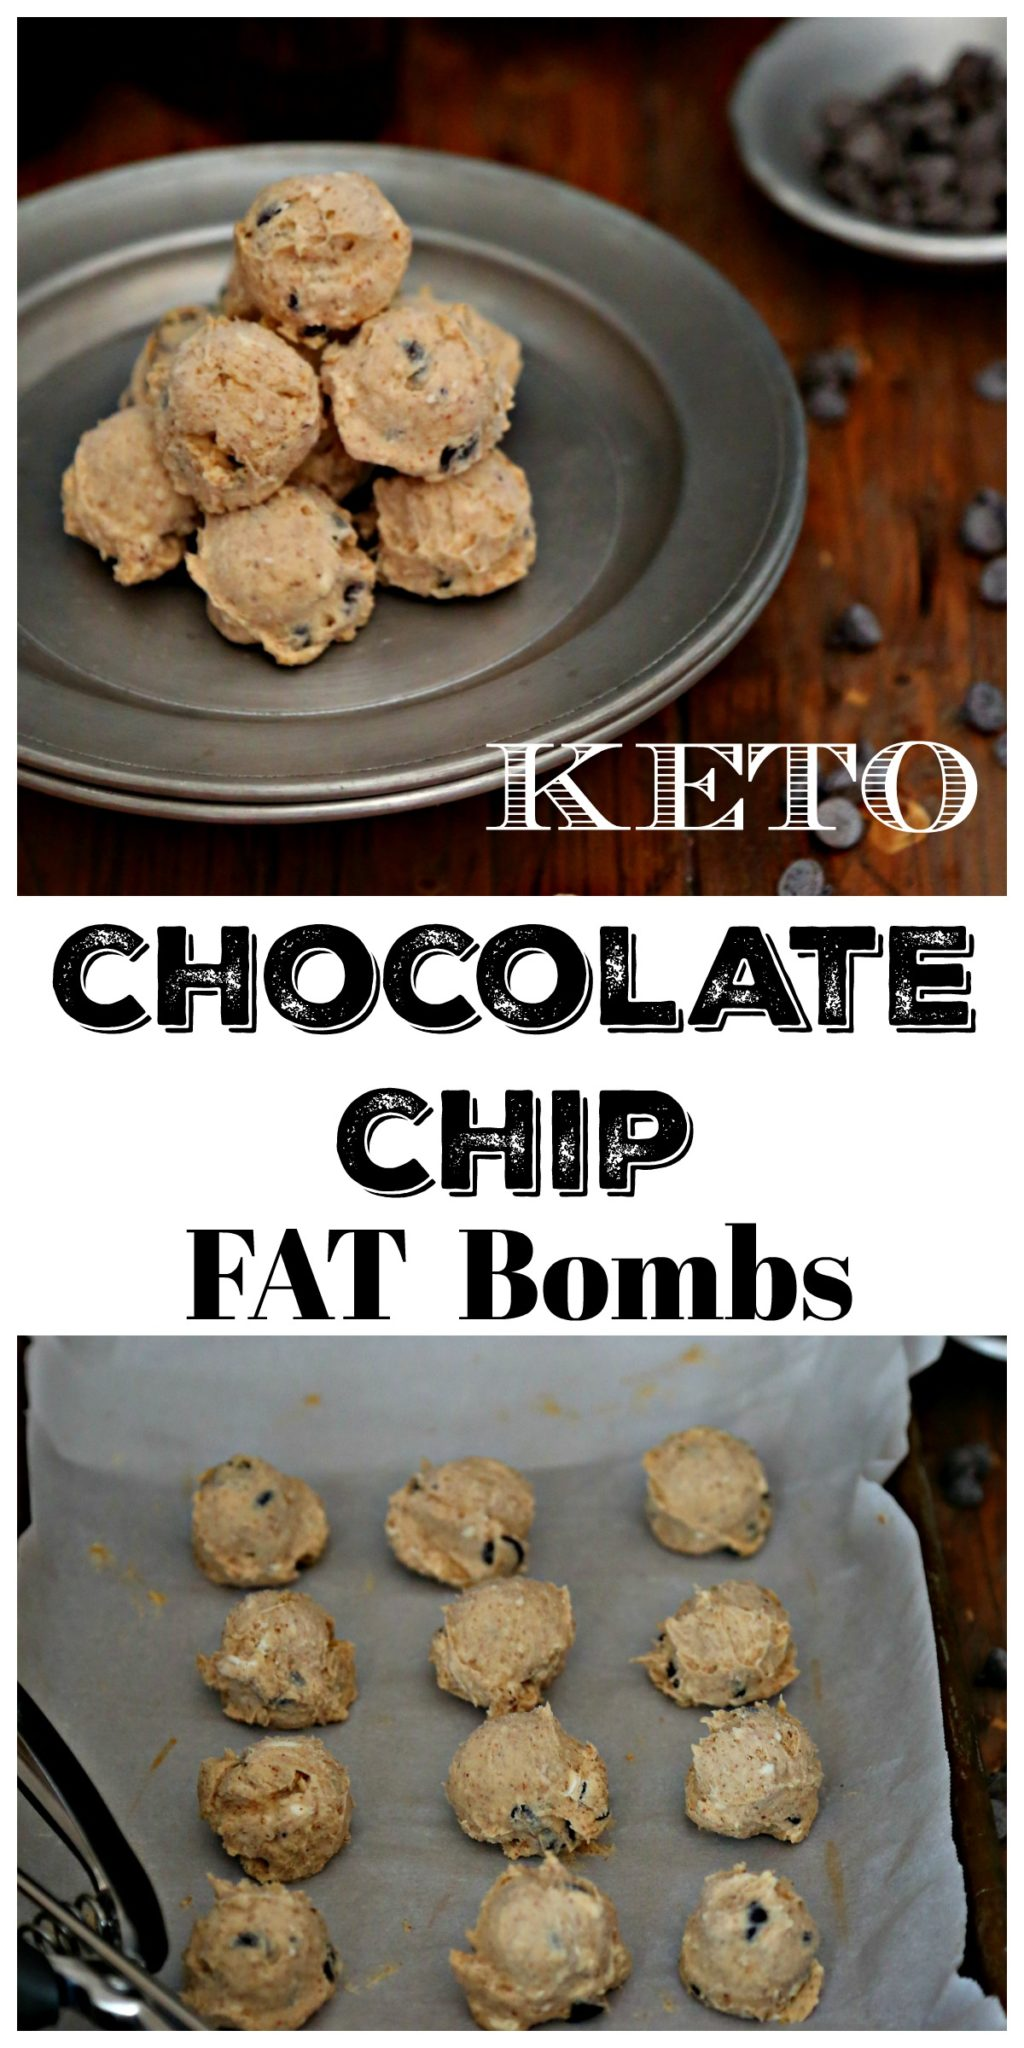 These no bake cookie keto chocolate chip cookie dough snacks will satisfy your sweet tooth any time of the day or night.  #keto #fatbombs #cookiedough #cookiedoughfatbombs #ketorecipes #ketosnacks #lowcarb